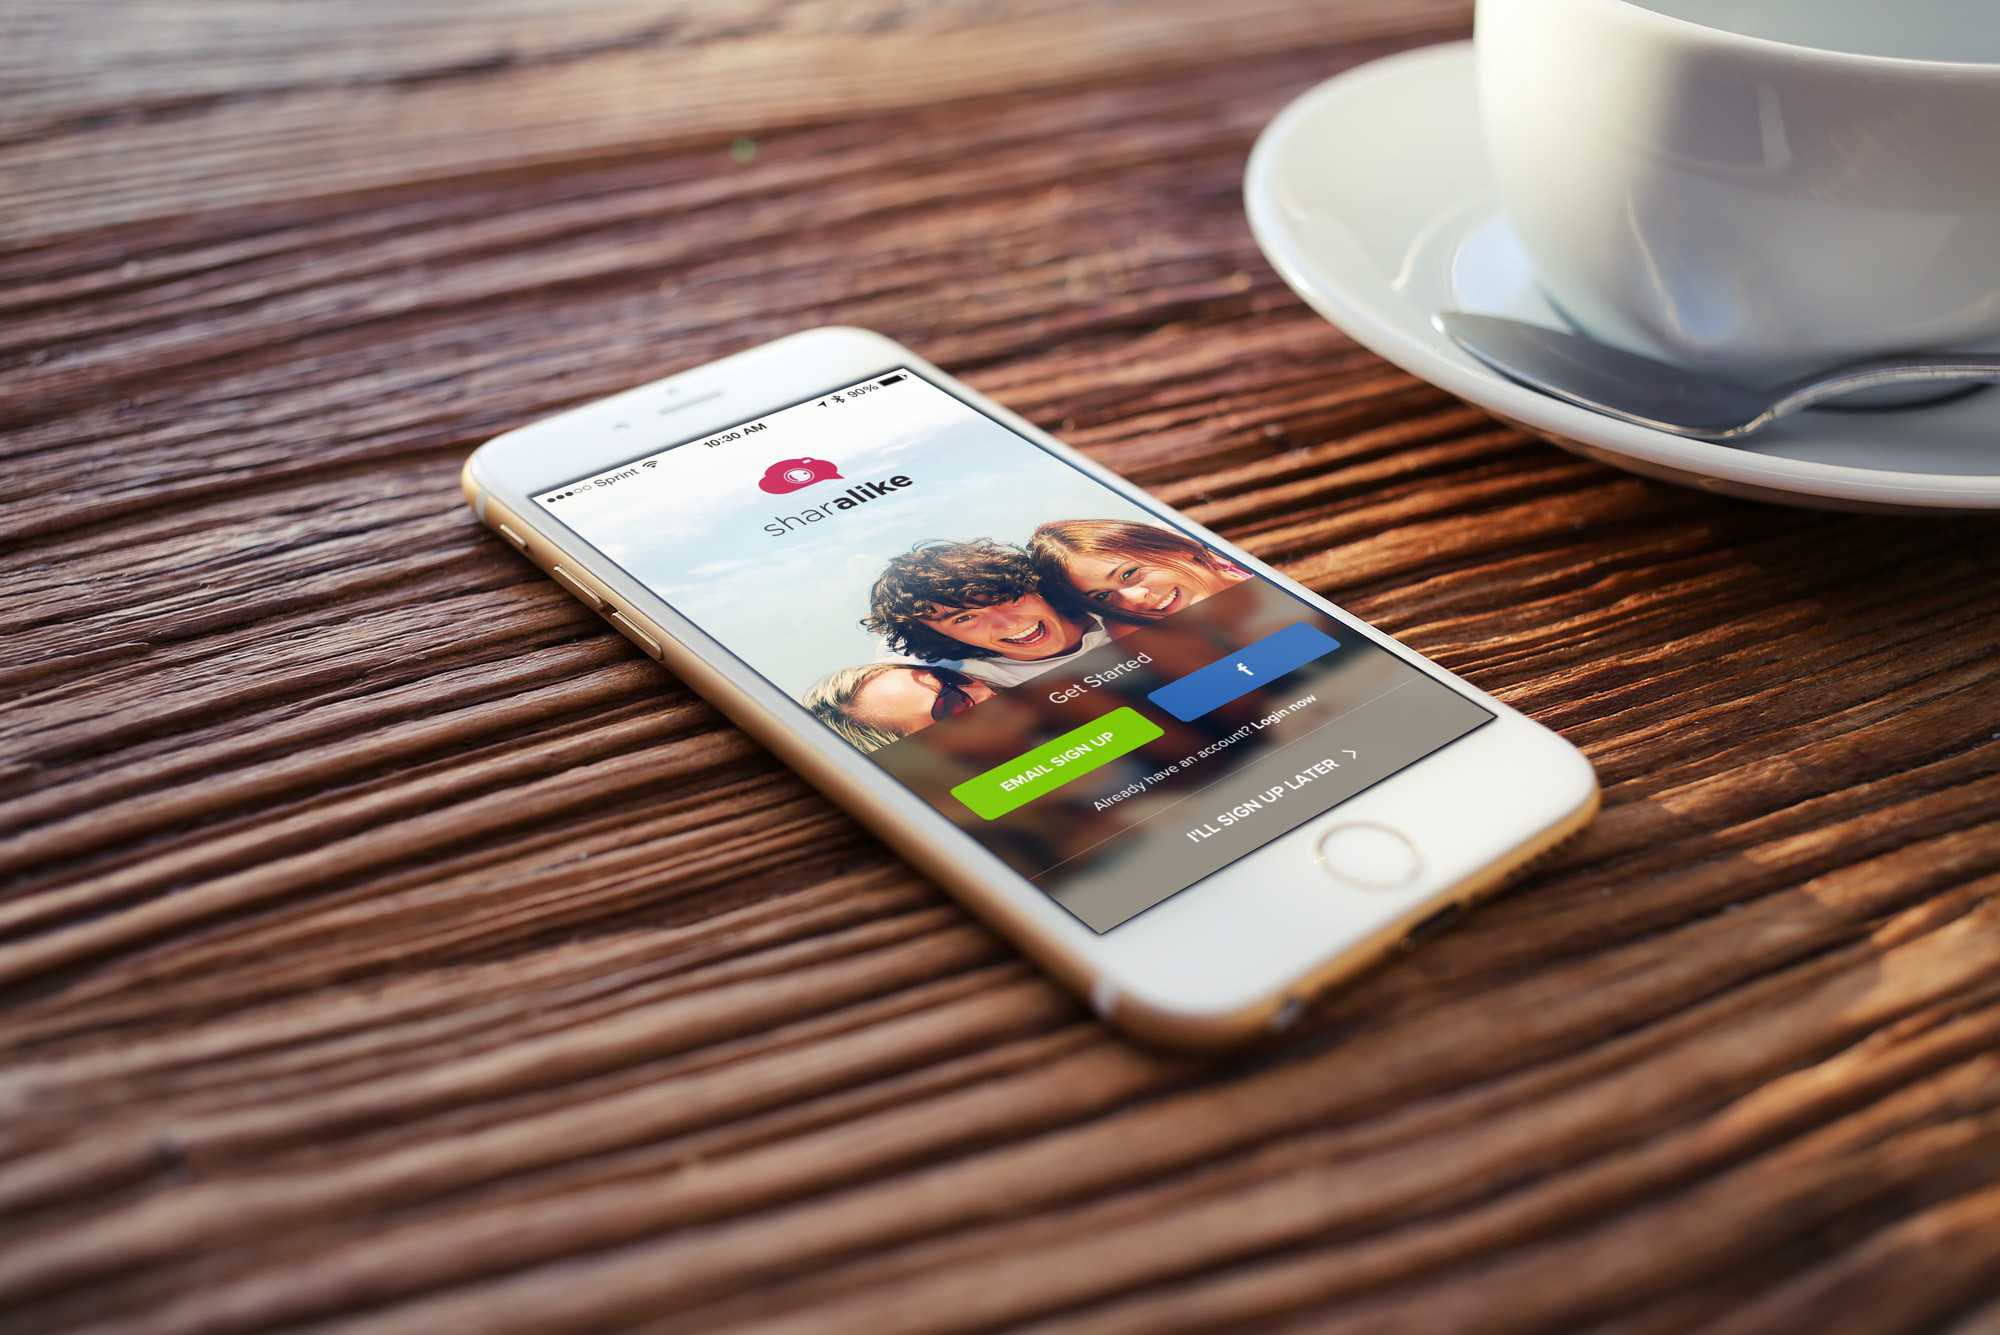 Got photos? Create cool slideshows to share and Sharalike